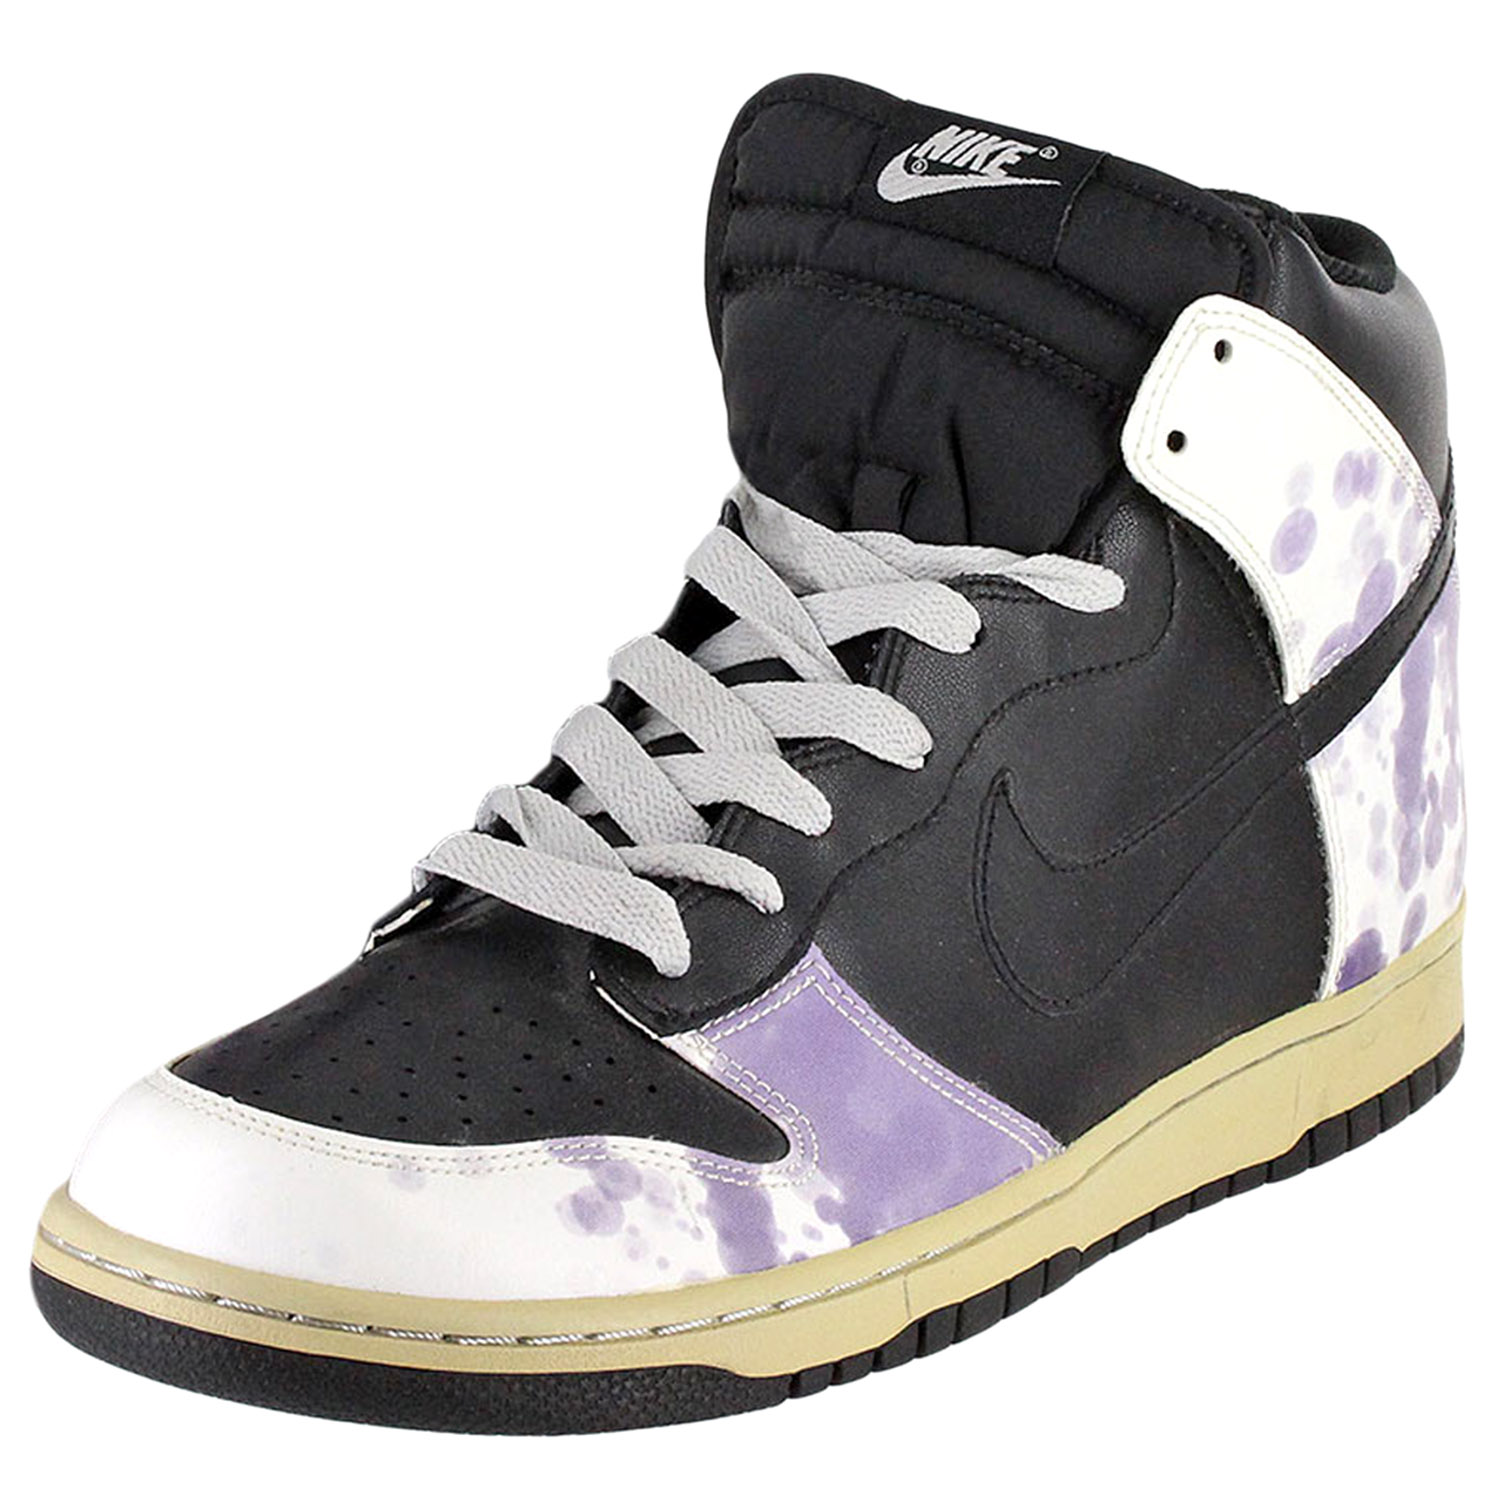 huge discount 275da d0c8c Details about NIKE DUNK HIGH WOMEN S BASKETBALL SHOES 318676-004 SIZE 11